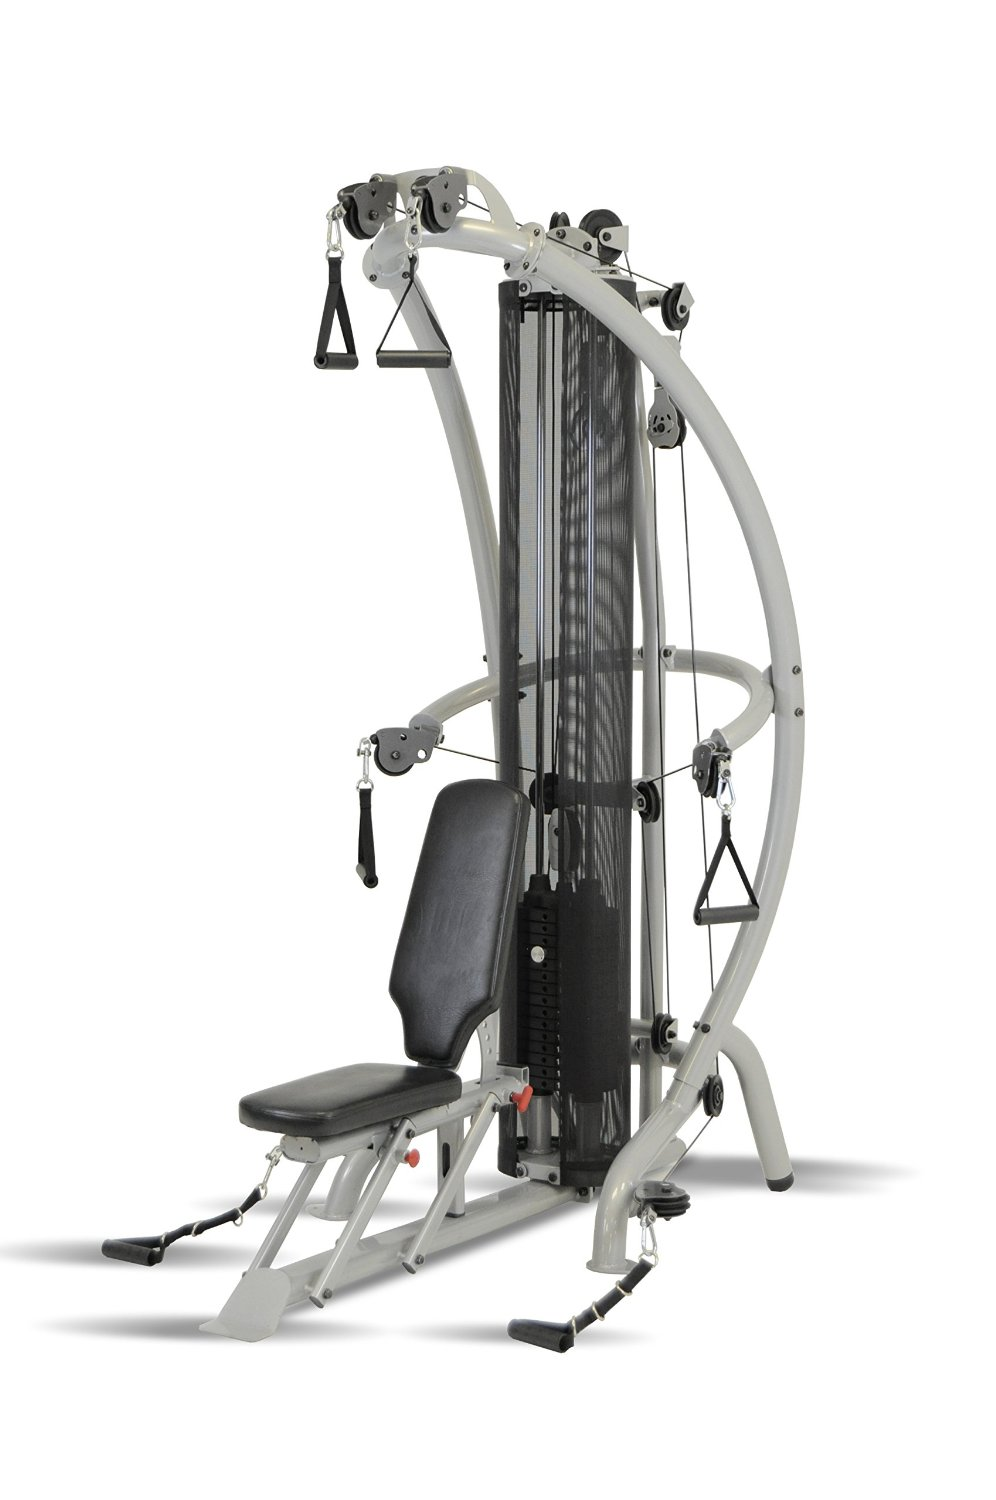 Inspire fitness m multi gym review latest